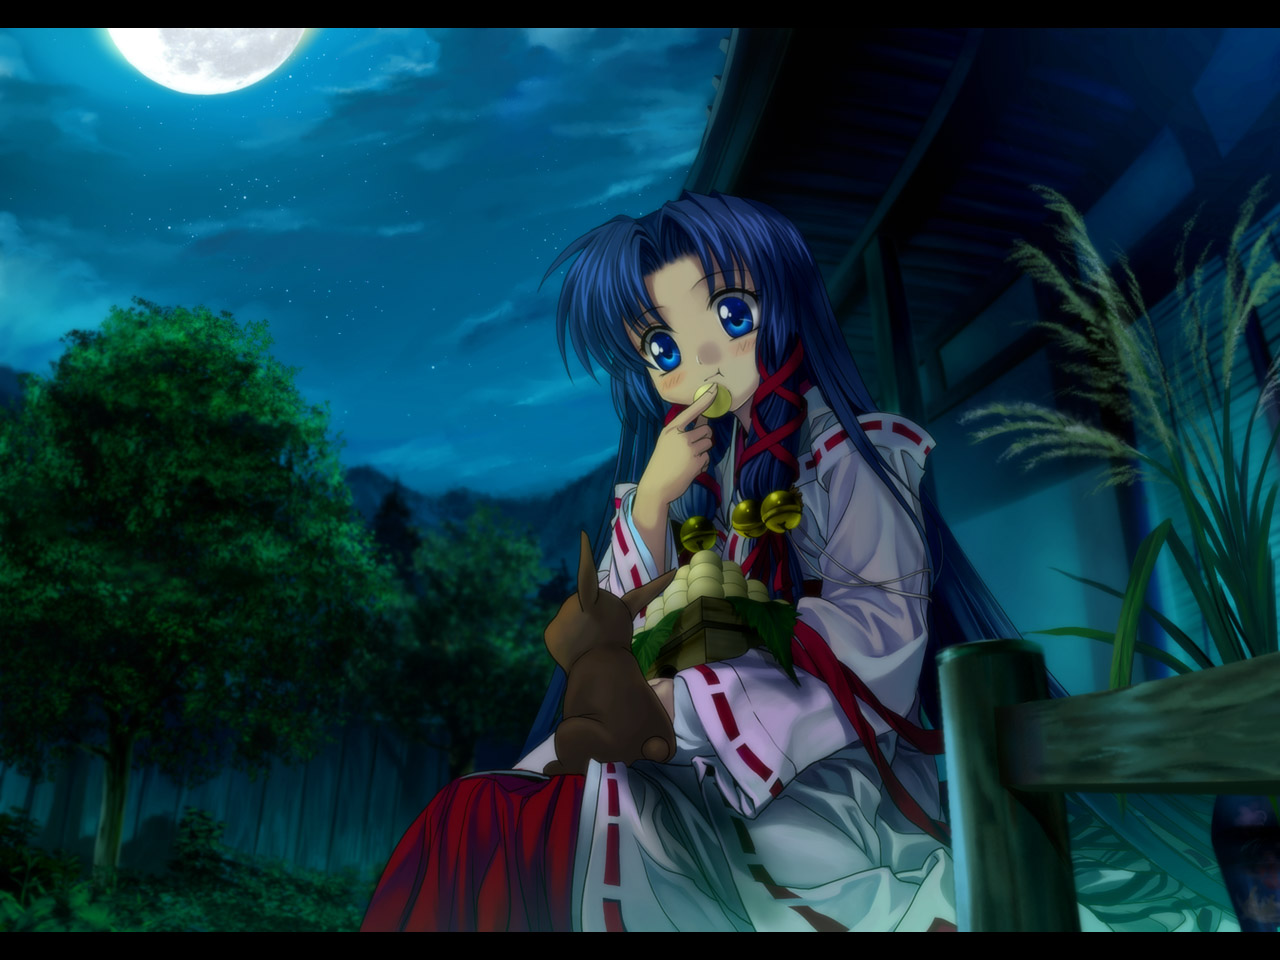 air japanese_clothes kanna kannabi_no_mikoto key moon moonknives night visualart